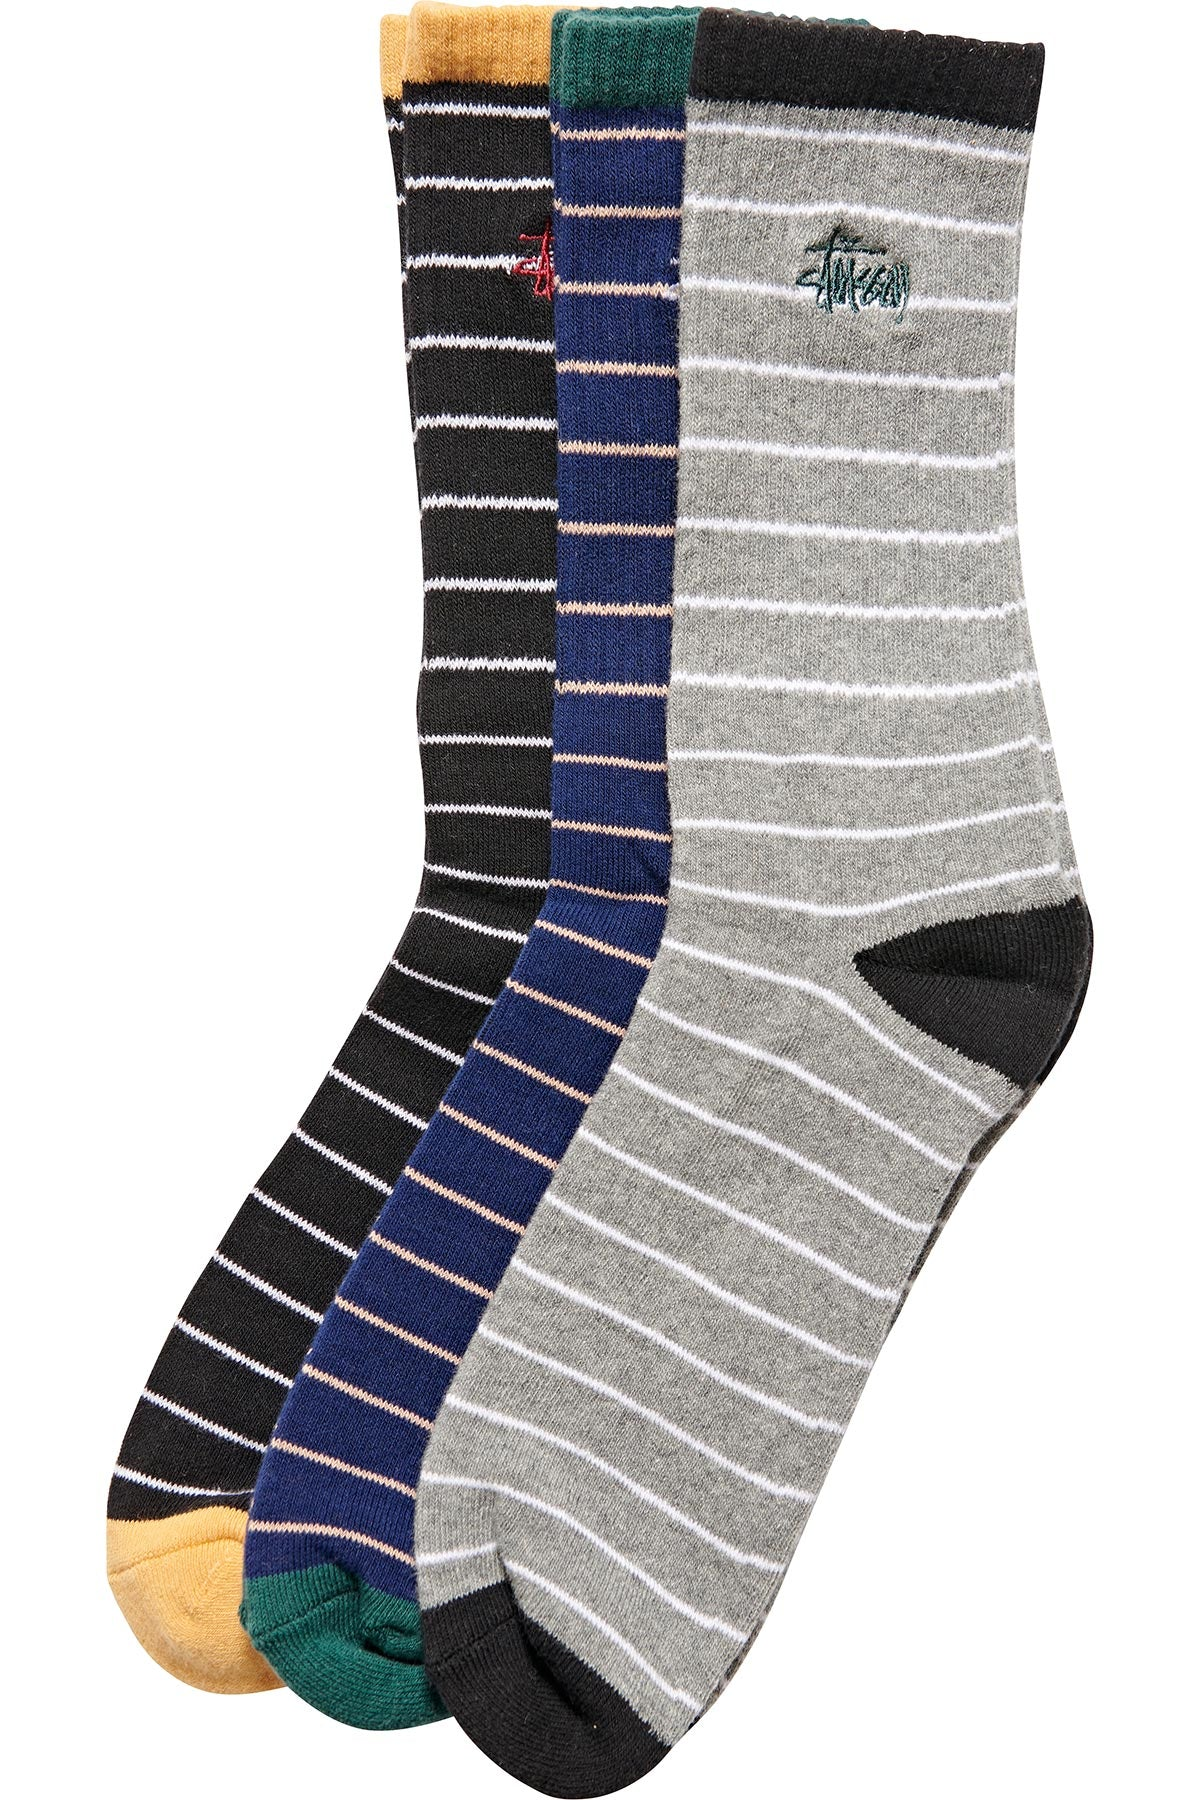 Graffiti Stripe Sock (3 Pack) - R8gzwear